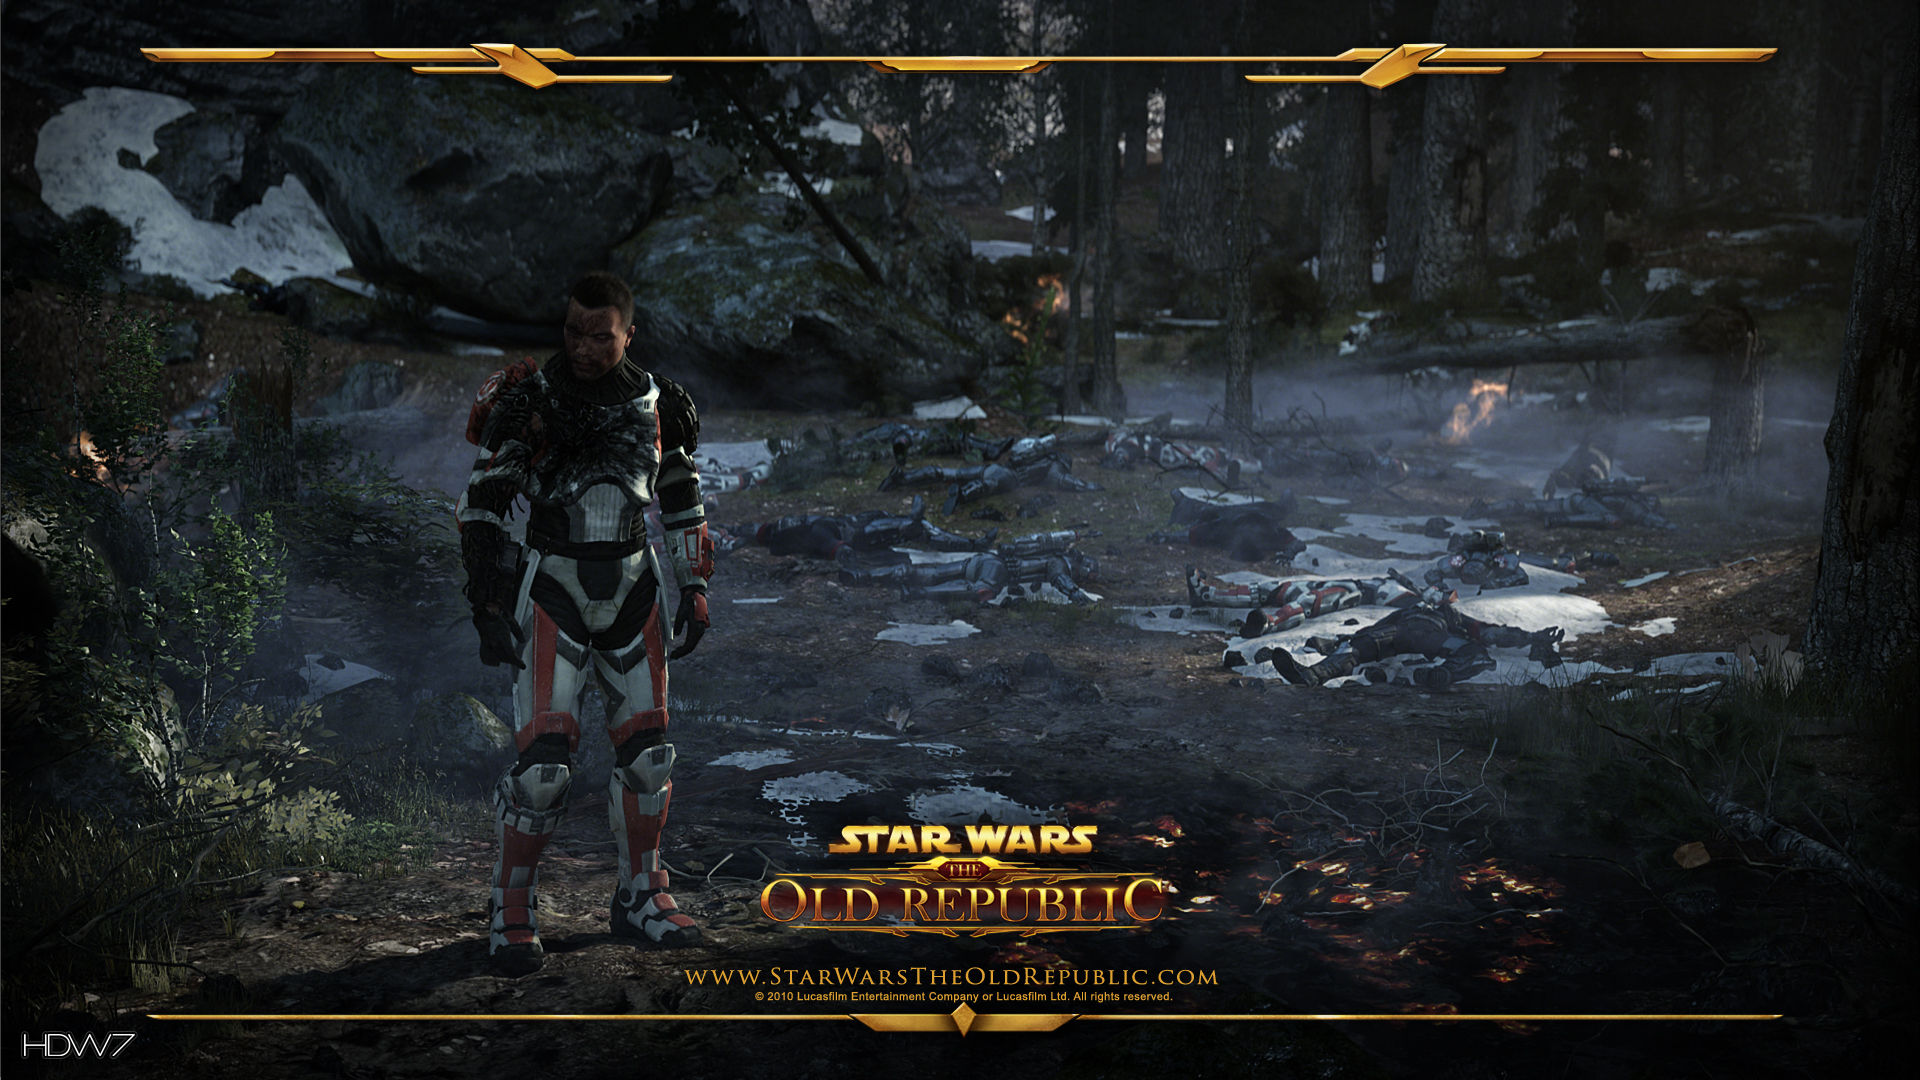 star wars the old republic last trooper standing 1920x1080